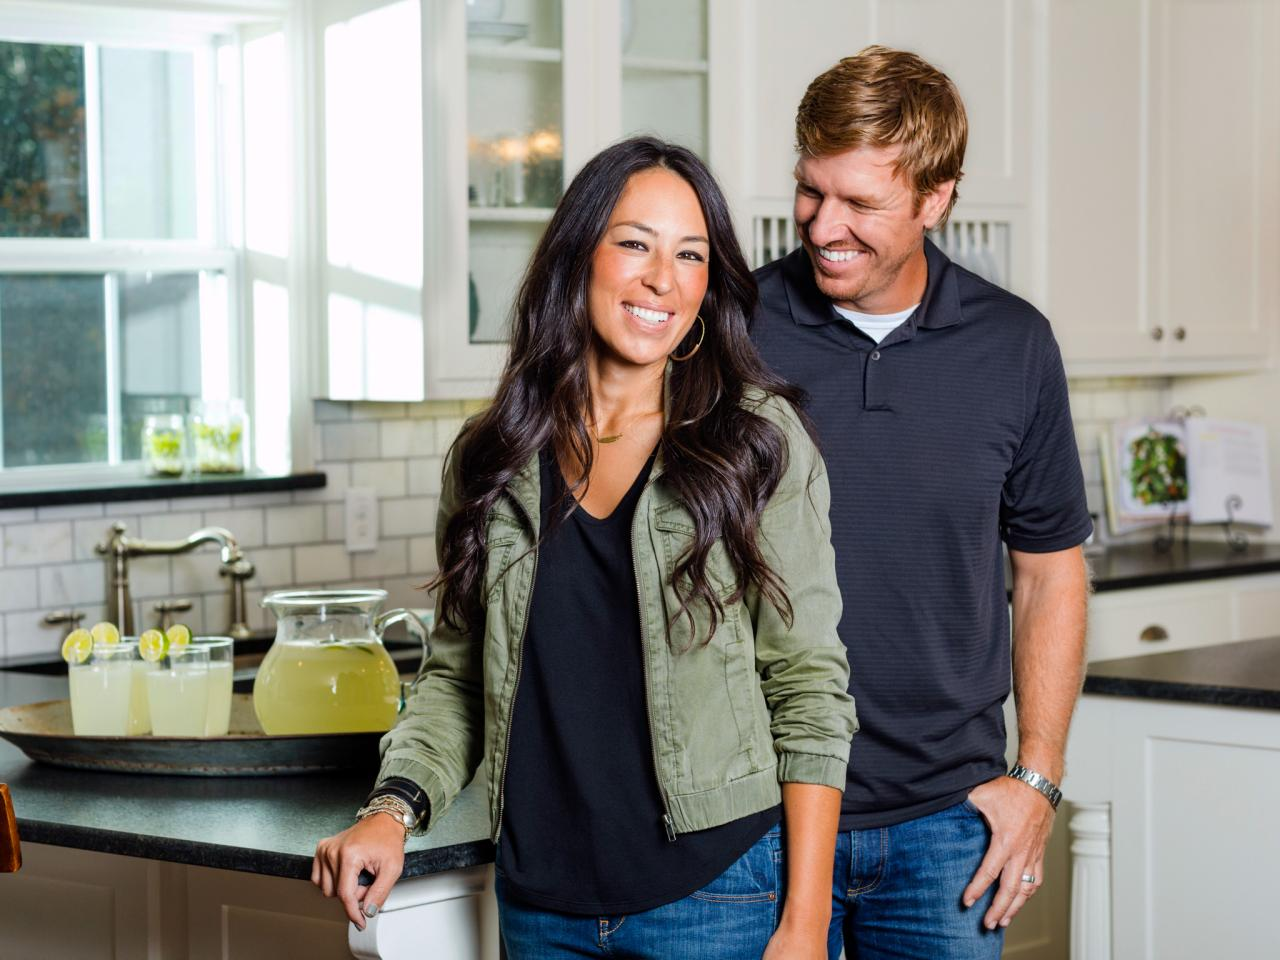 Designers chip and joanna gaines designers chip and joanna gaines